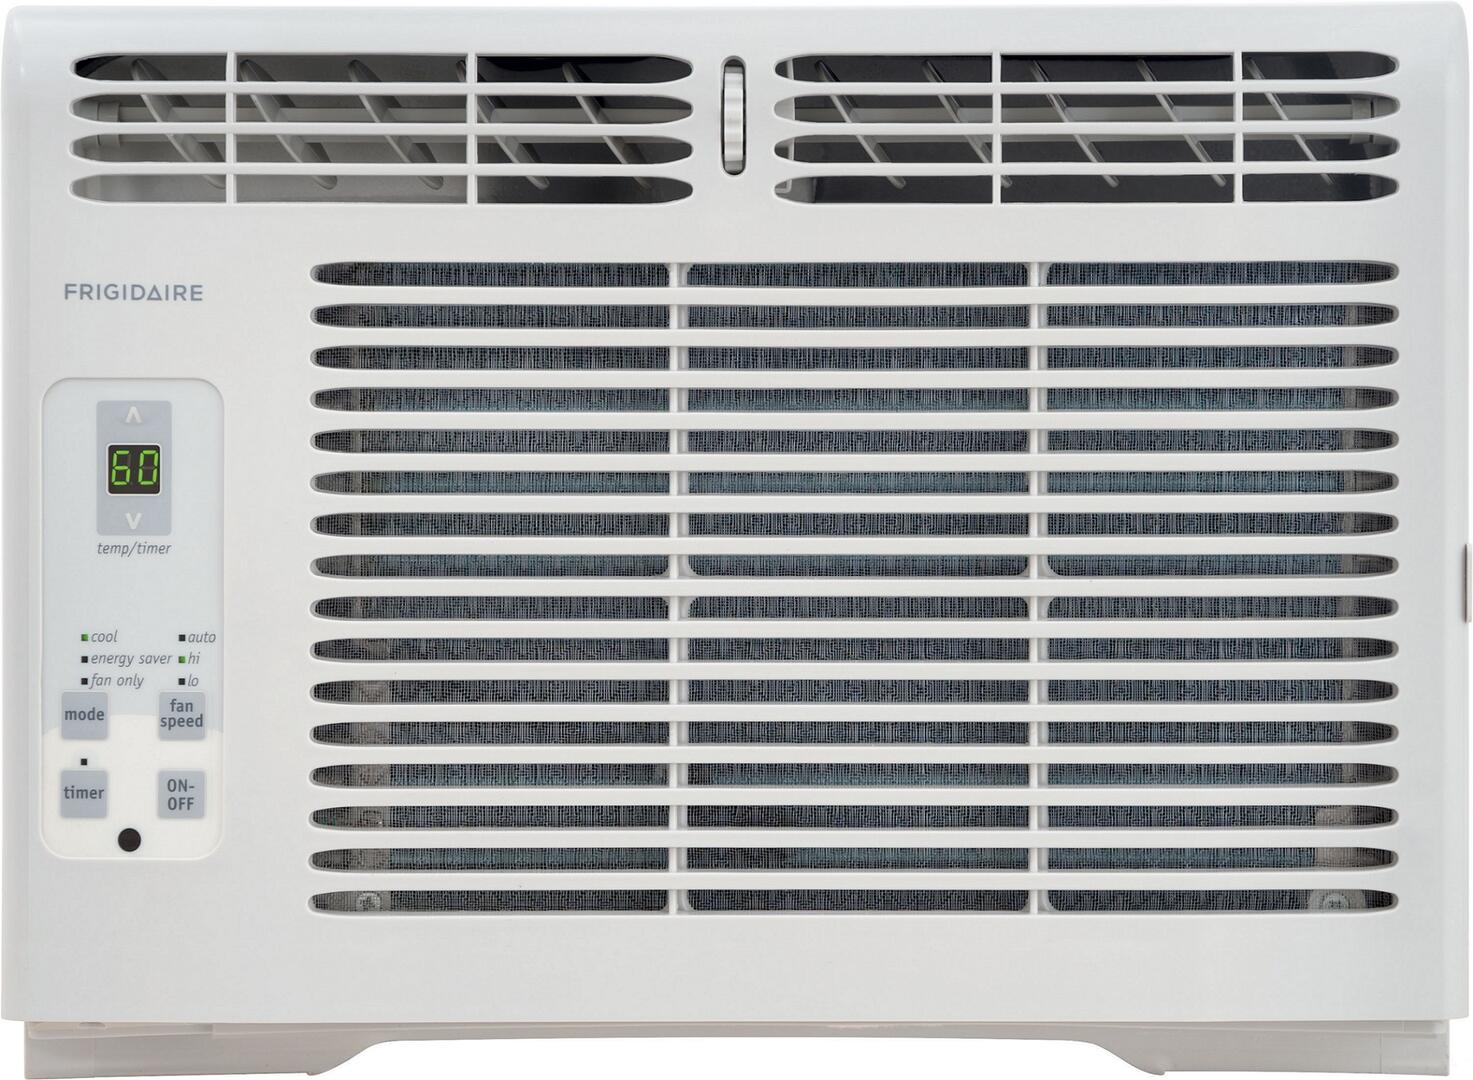 #59604D Frigidaire FFRA0522Q1 Window Air Conditioner Cooling Area  Most Effective 5885 Portable Ac Without Vent pictures with 1473x1080 px on helpvideos.info - Air Conditioners, Air Coolers and more